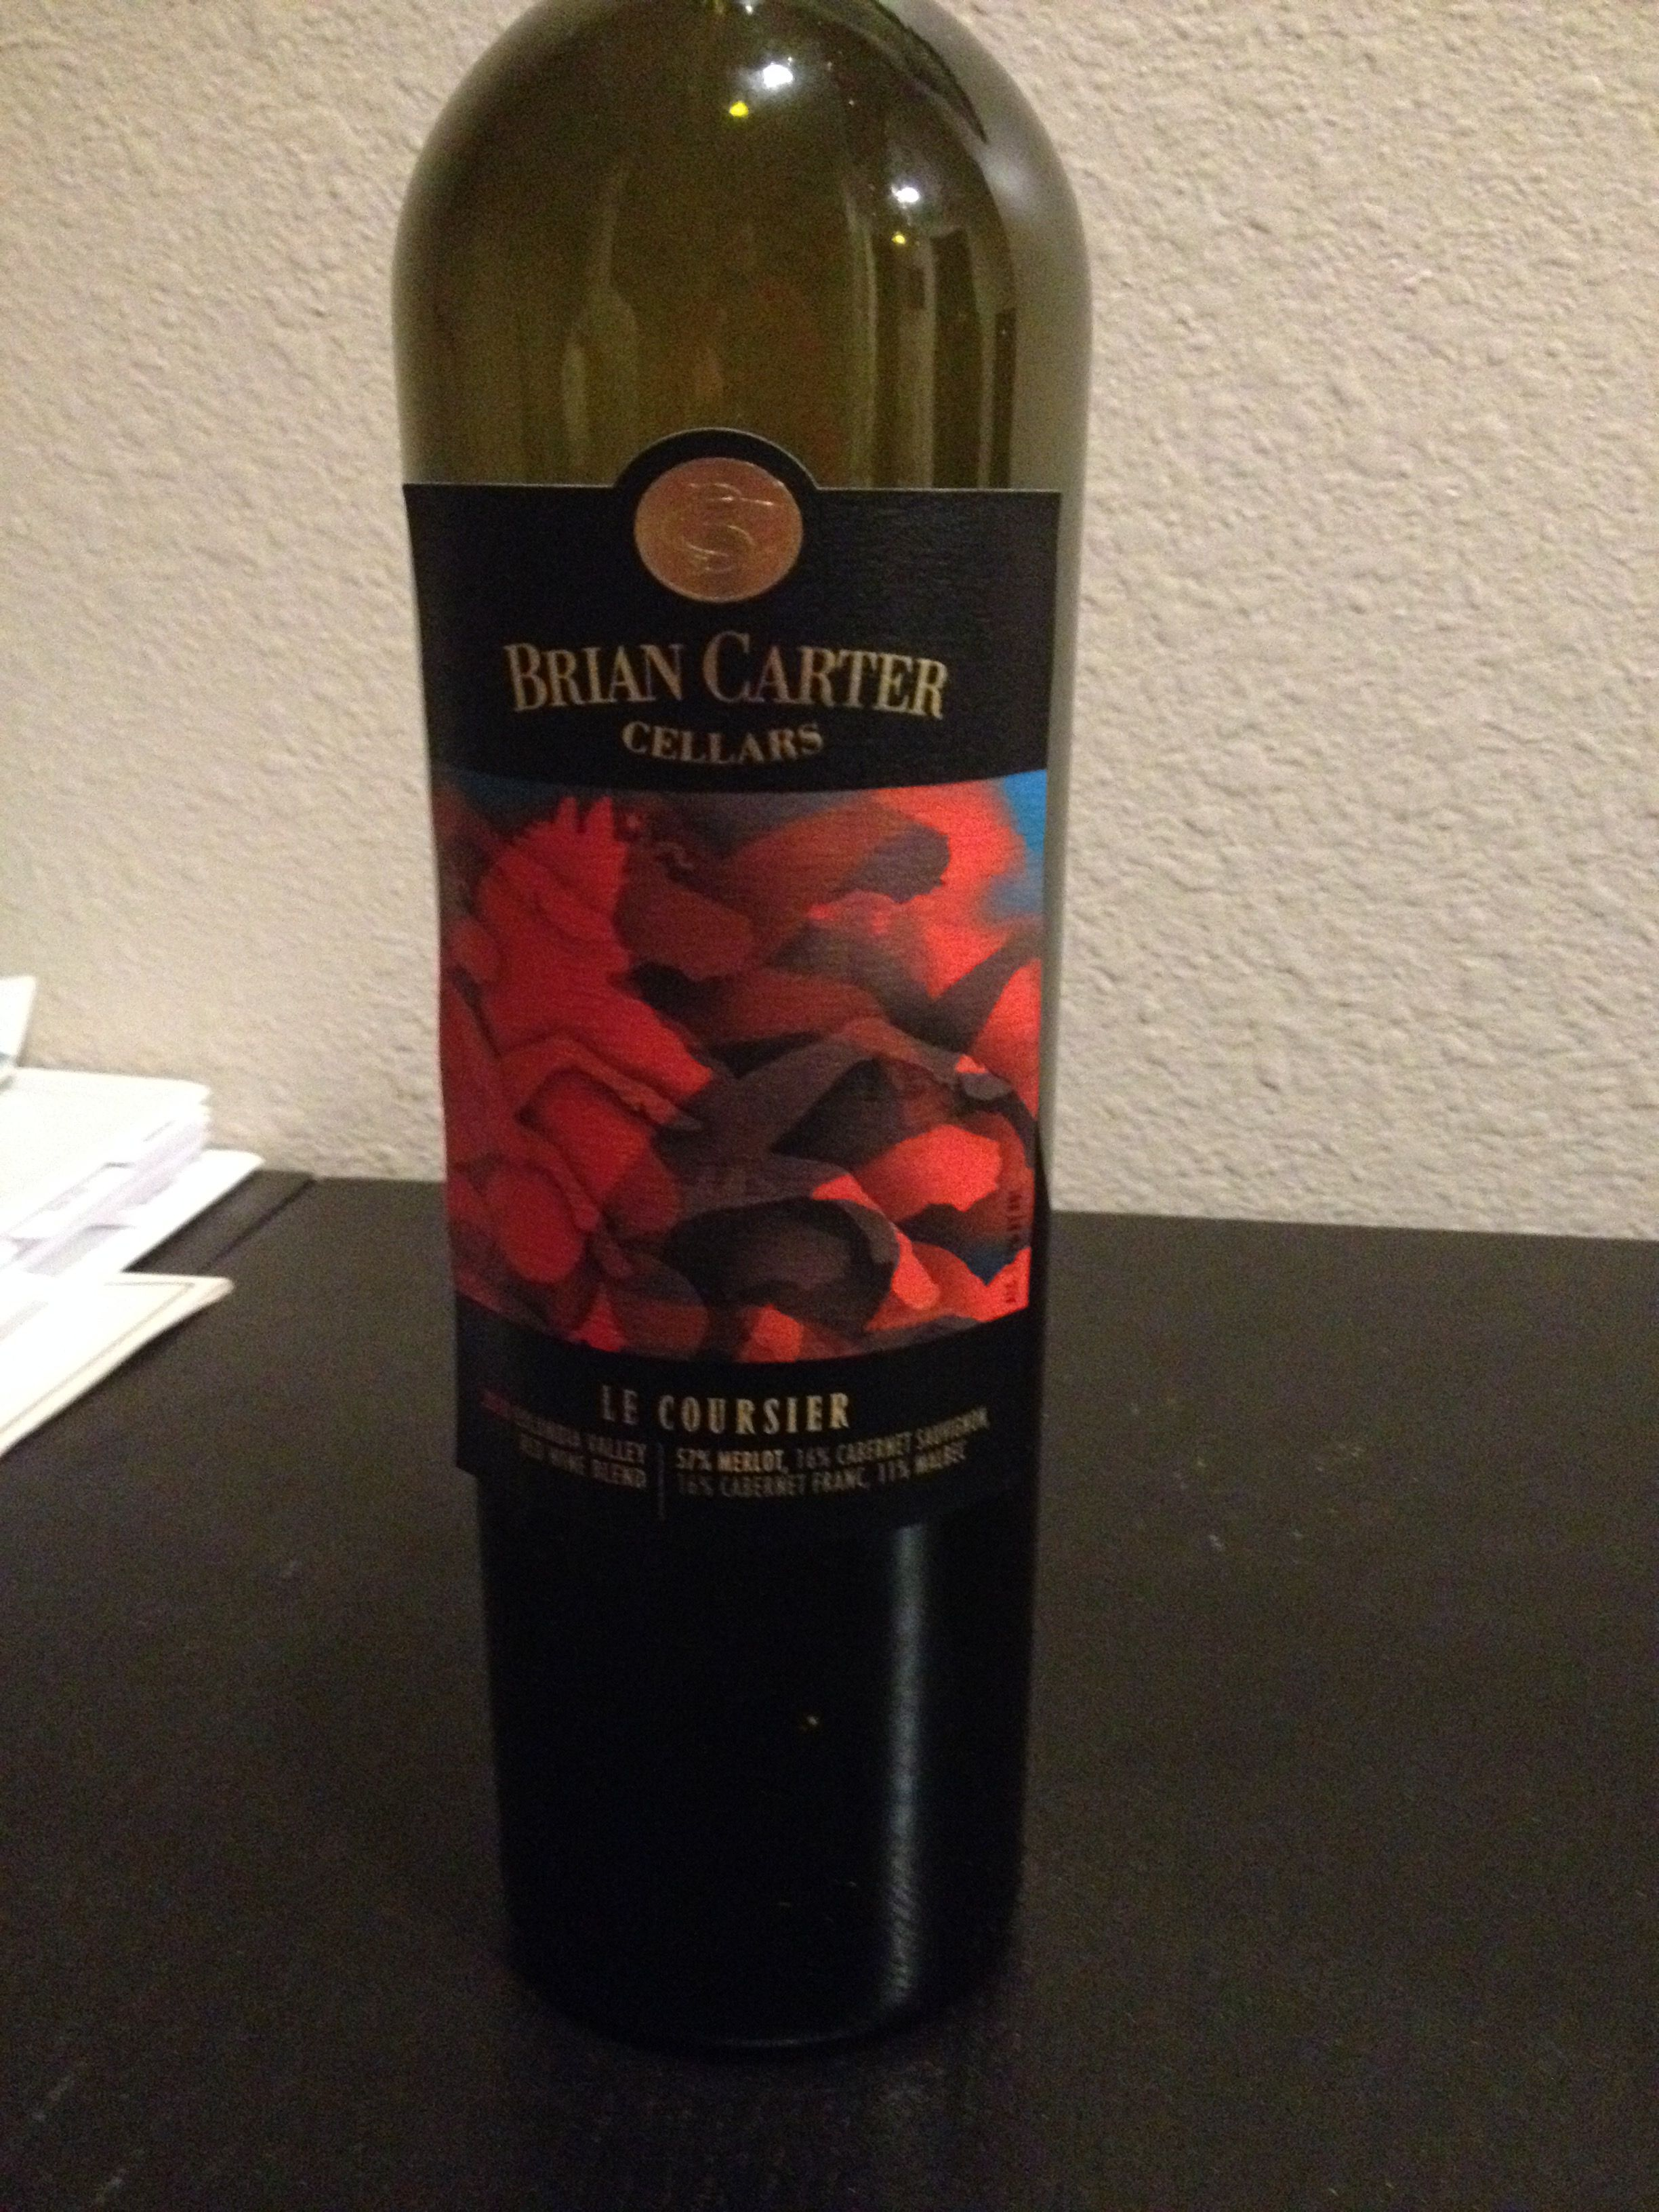 2010 Brian Carter Cellars Le Coursier Columbia Valley 57 Merlot 16 Cab Sauv 16 Cab Franc 11 Malbec Excellent Wine From A Malbec Red Wine Winemaking